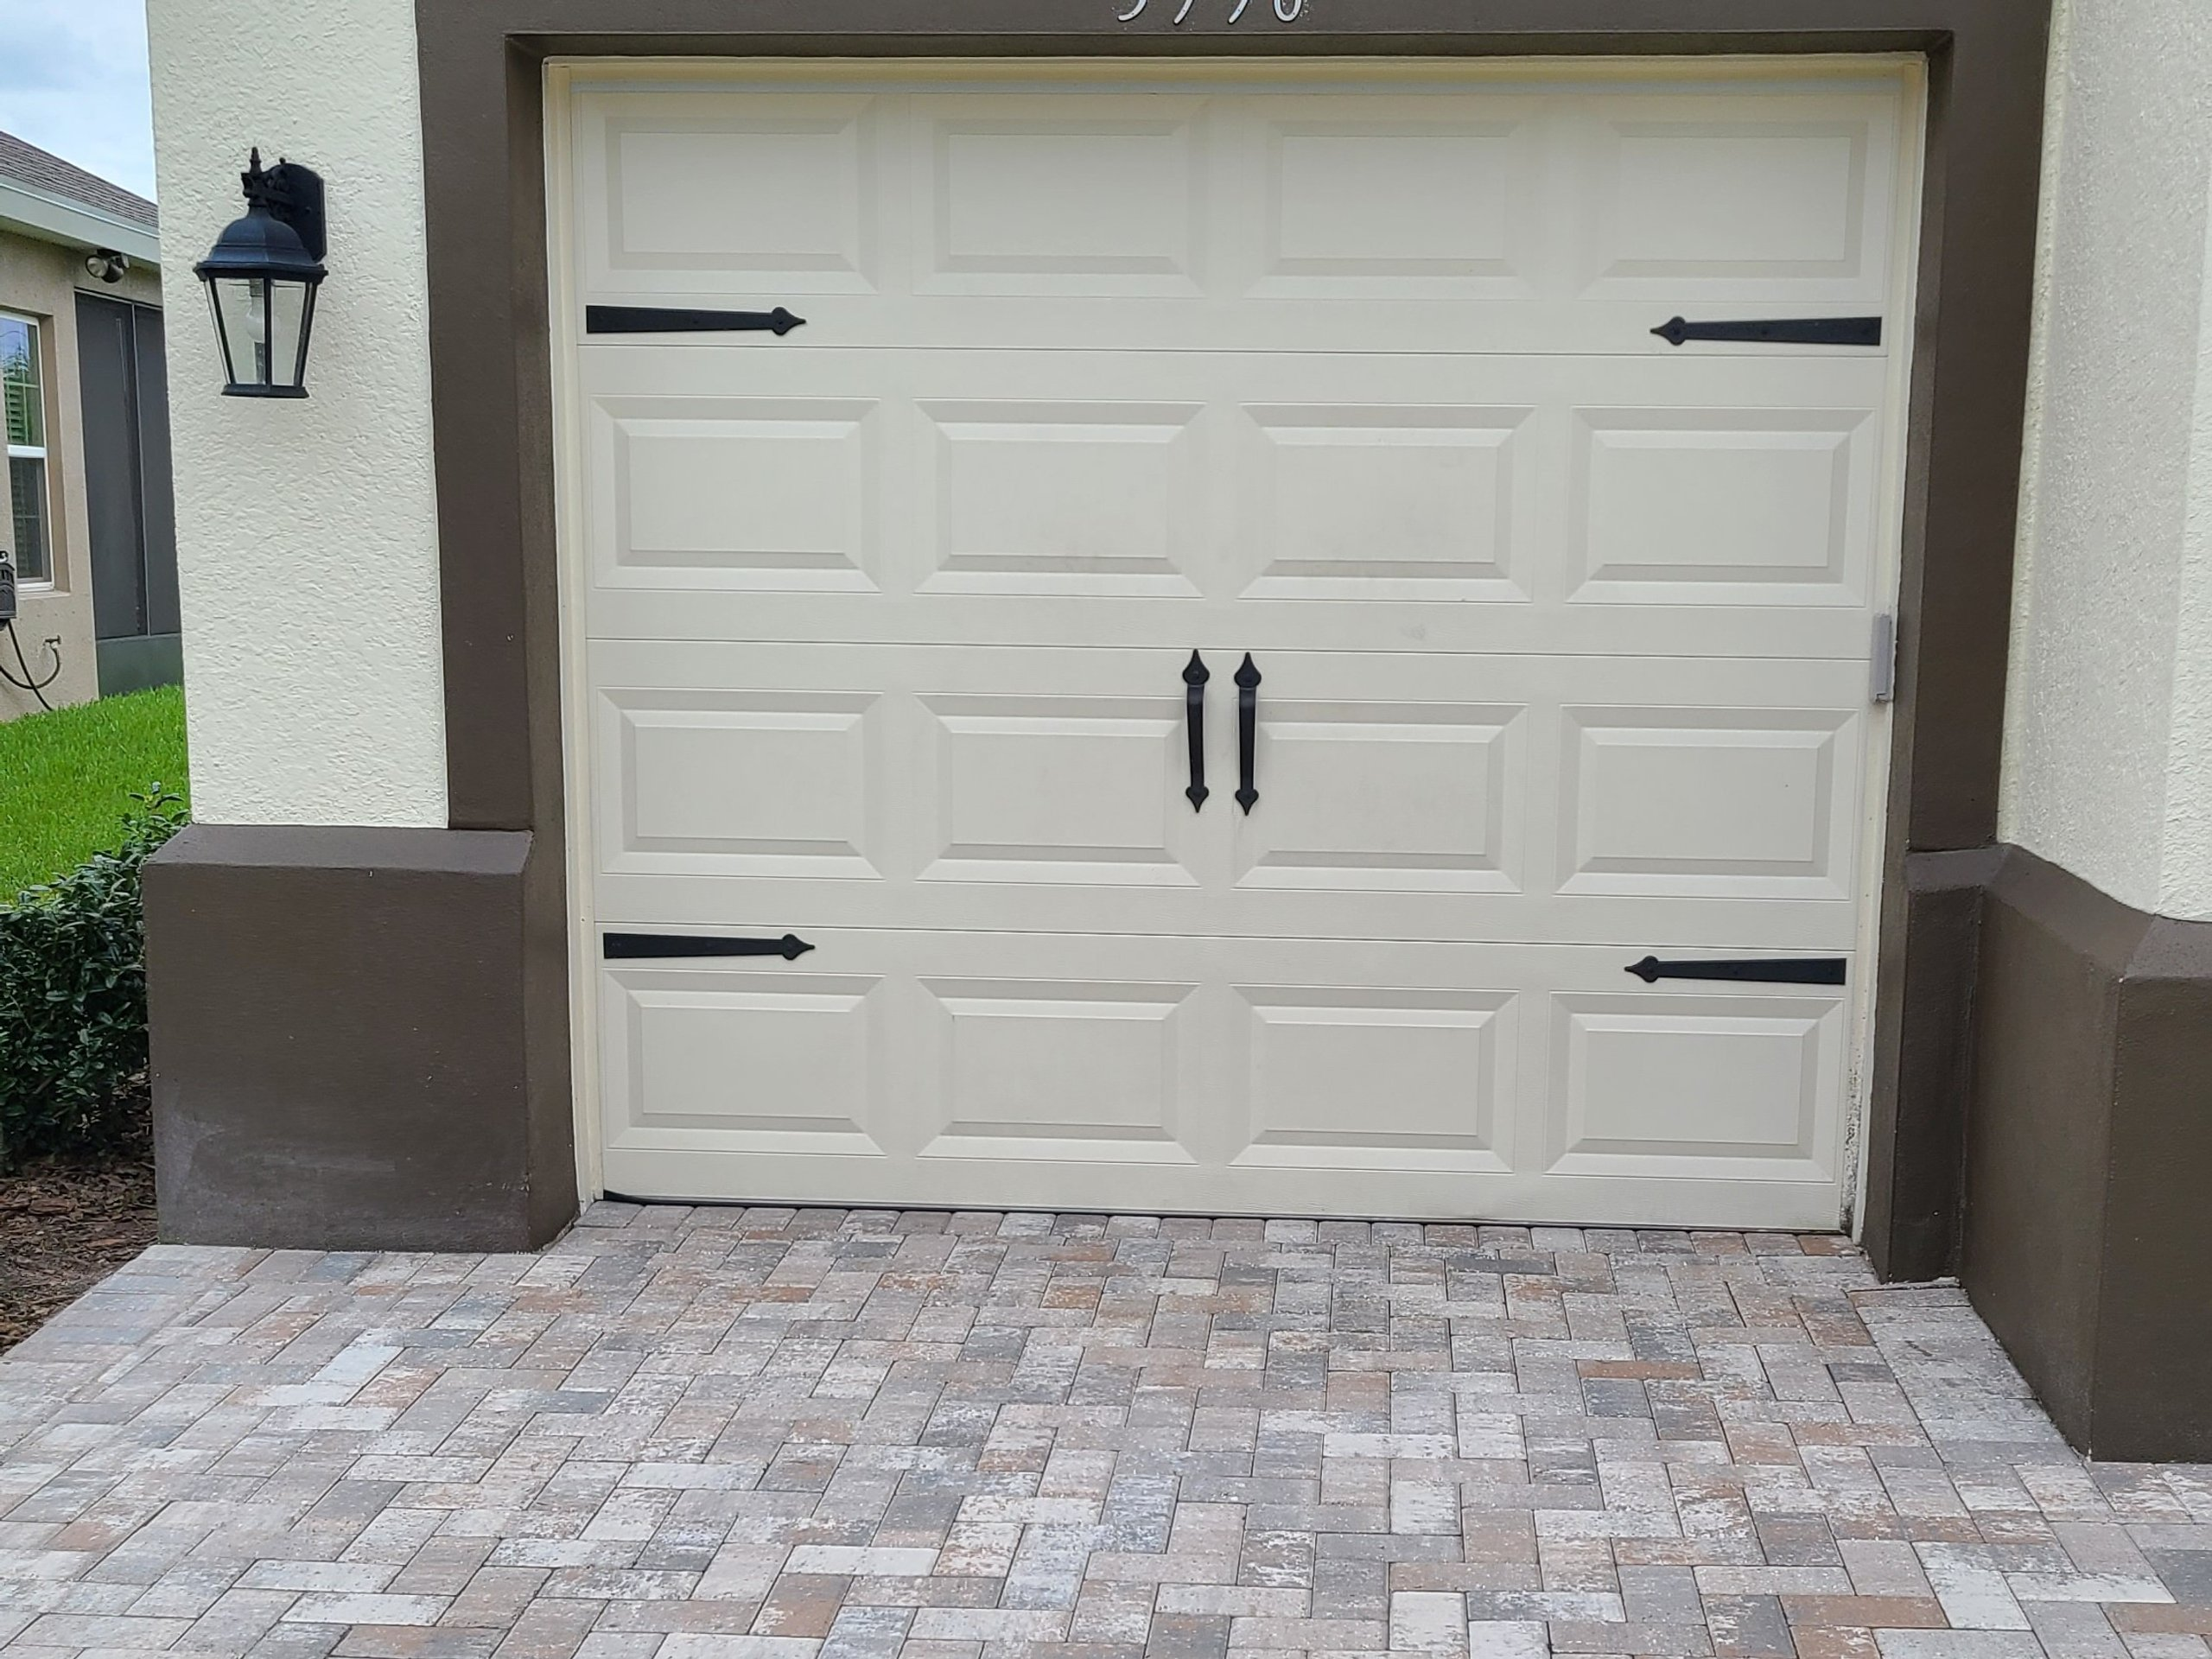 16x12 Garage self storage unit